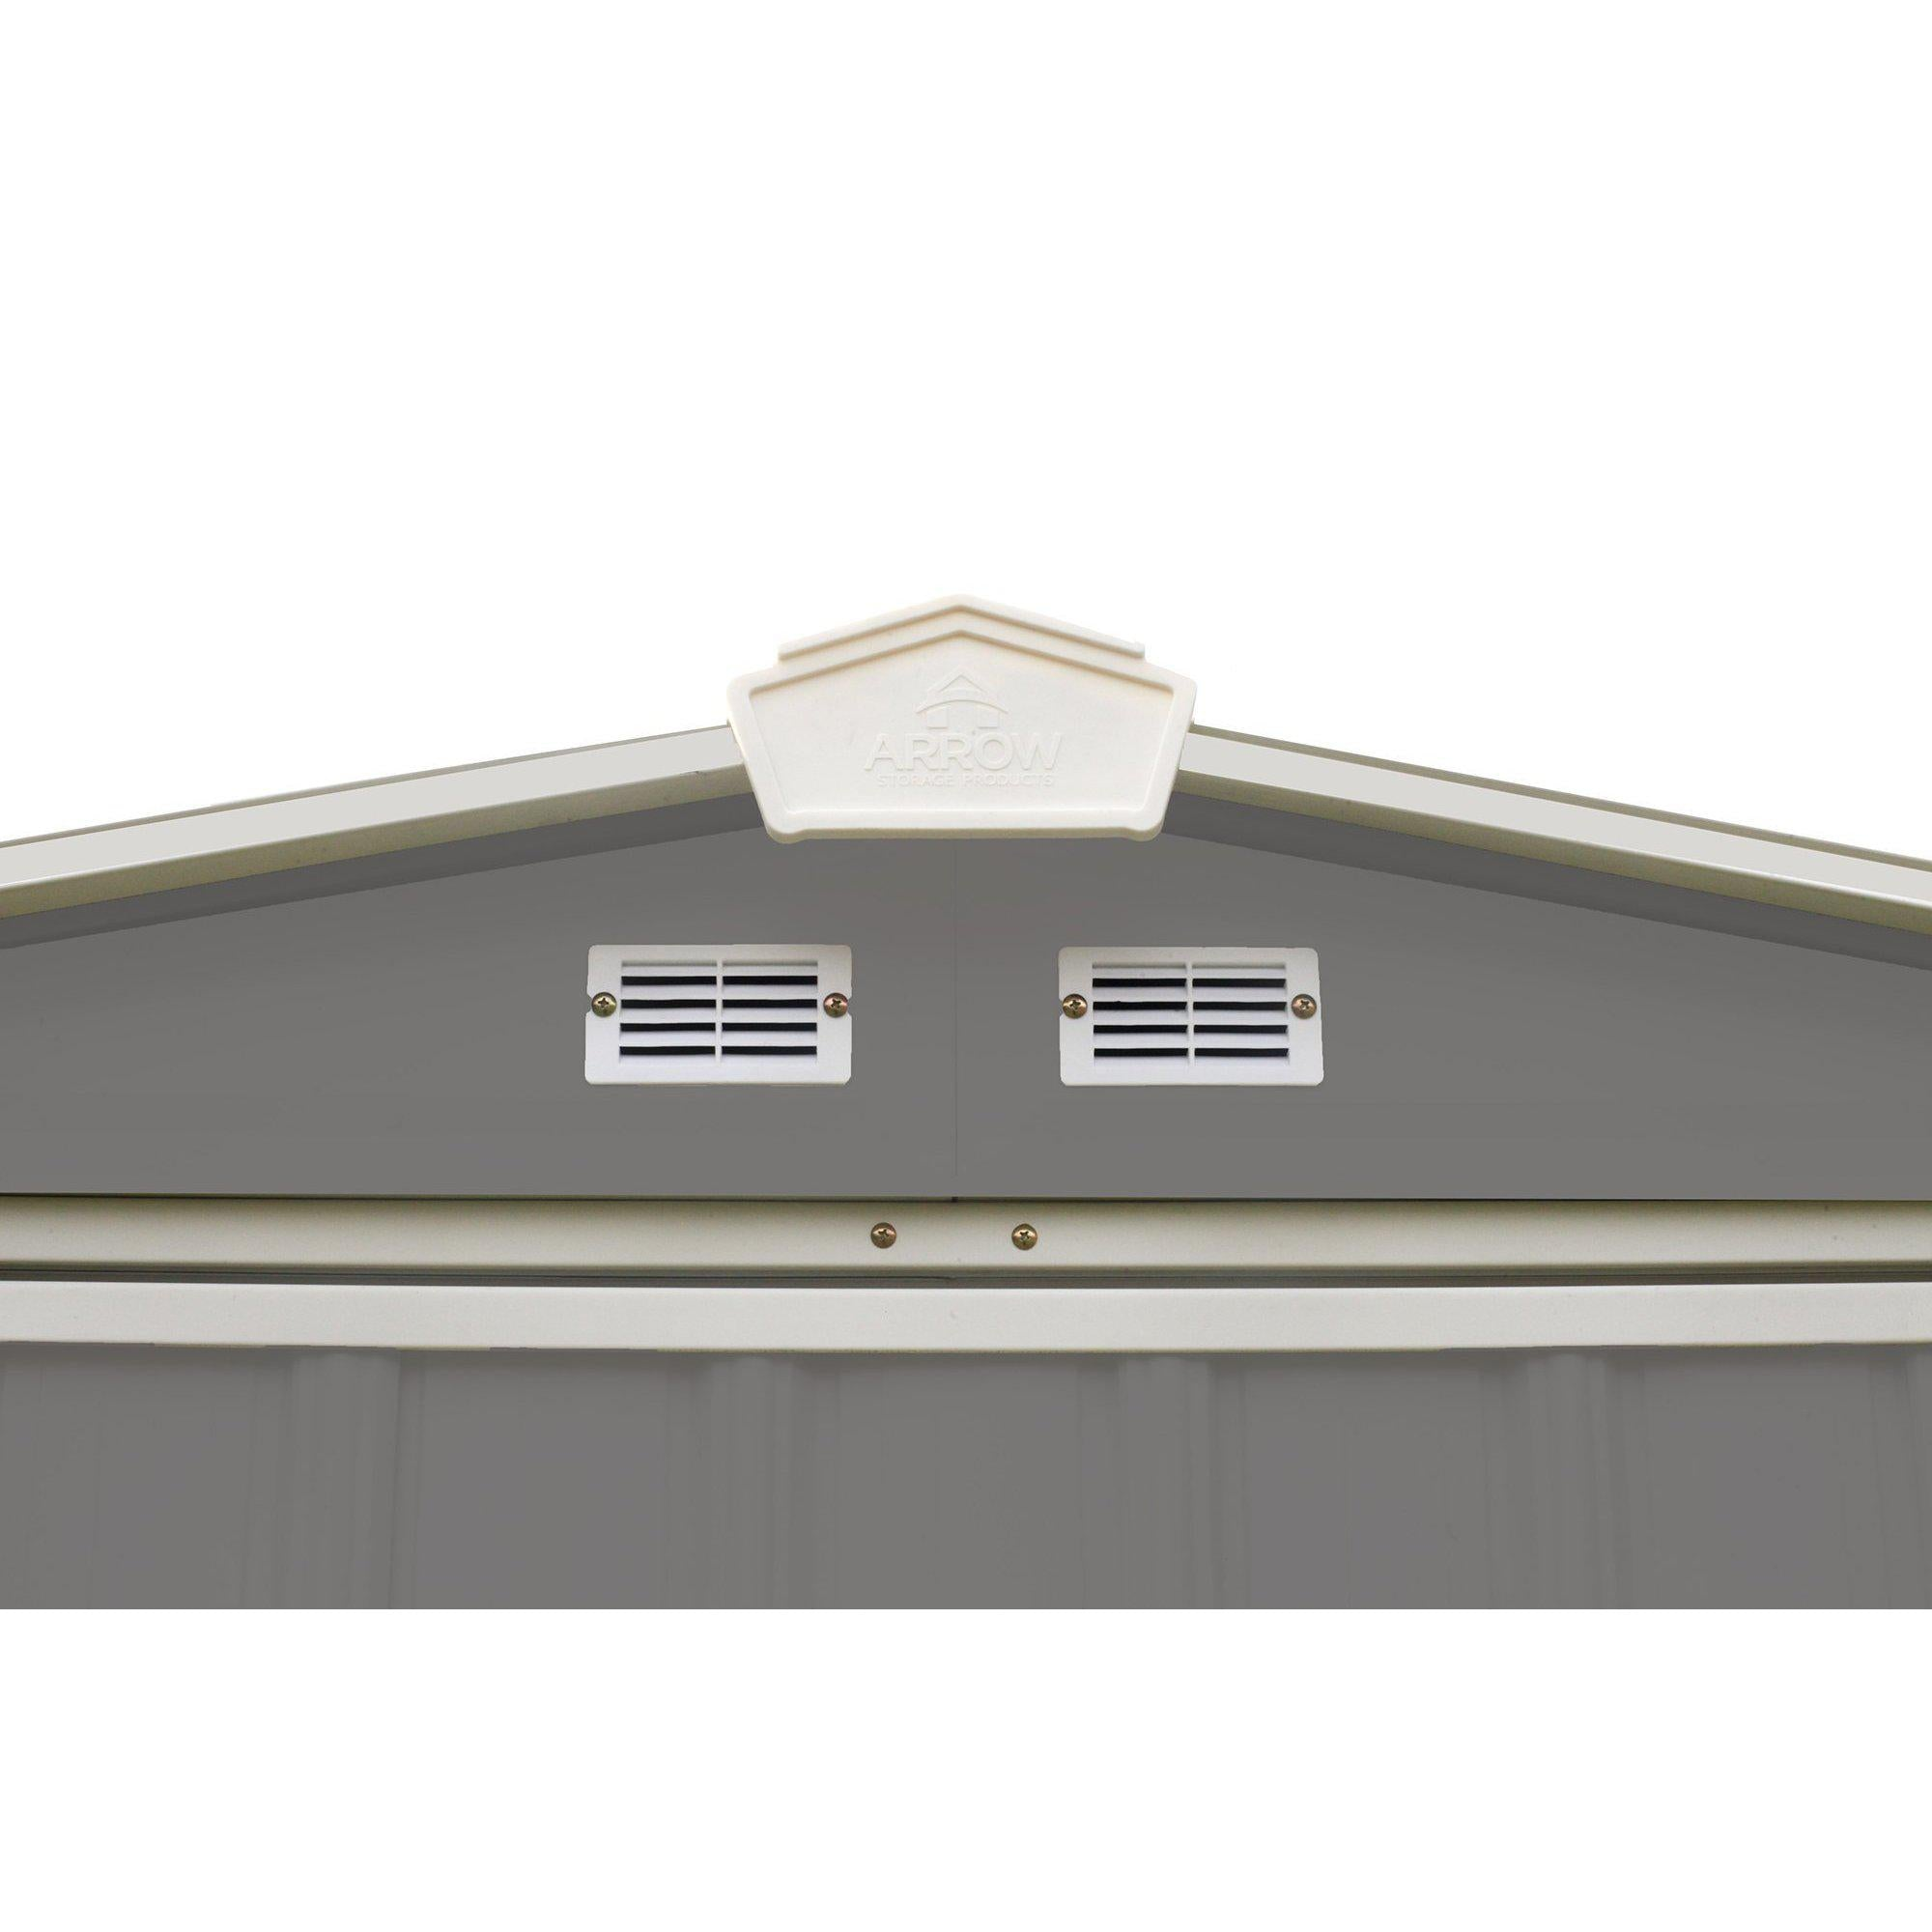 Arrow EZEE Shed Low Gable Steel Storage Shed, Charcoal/Cream Trim, 6 x 5 ft.